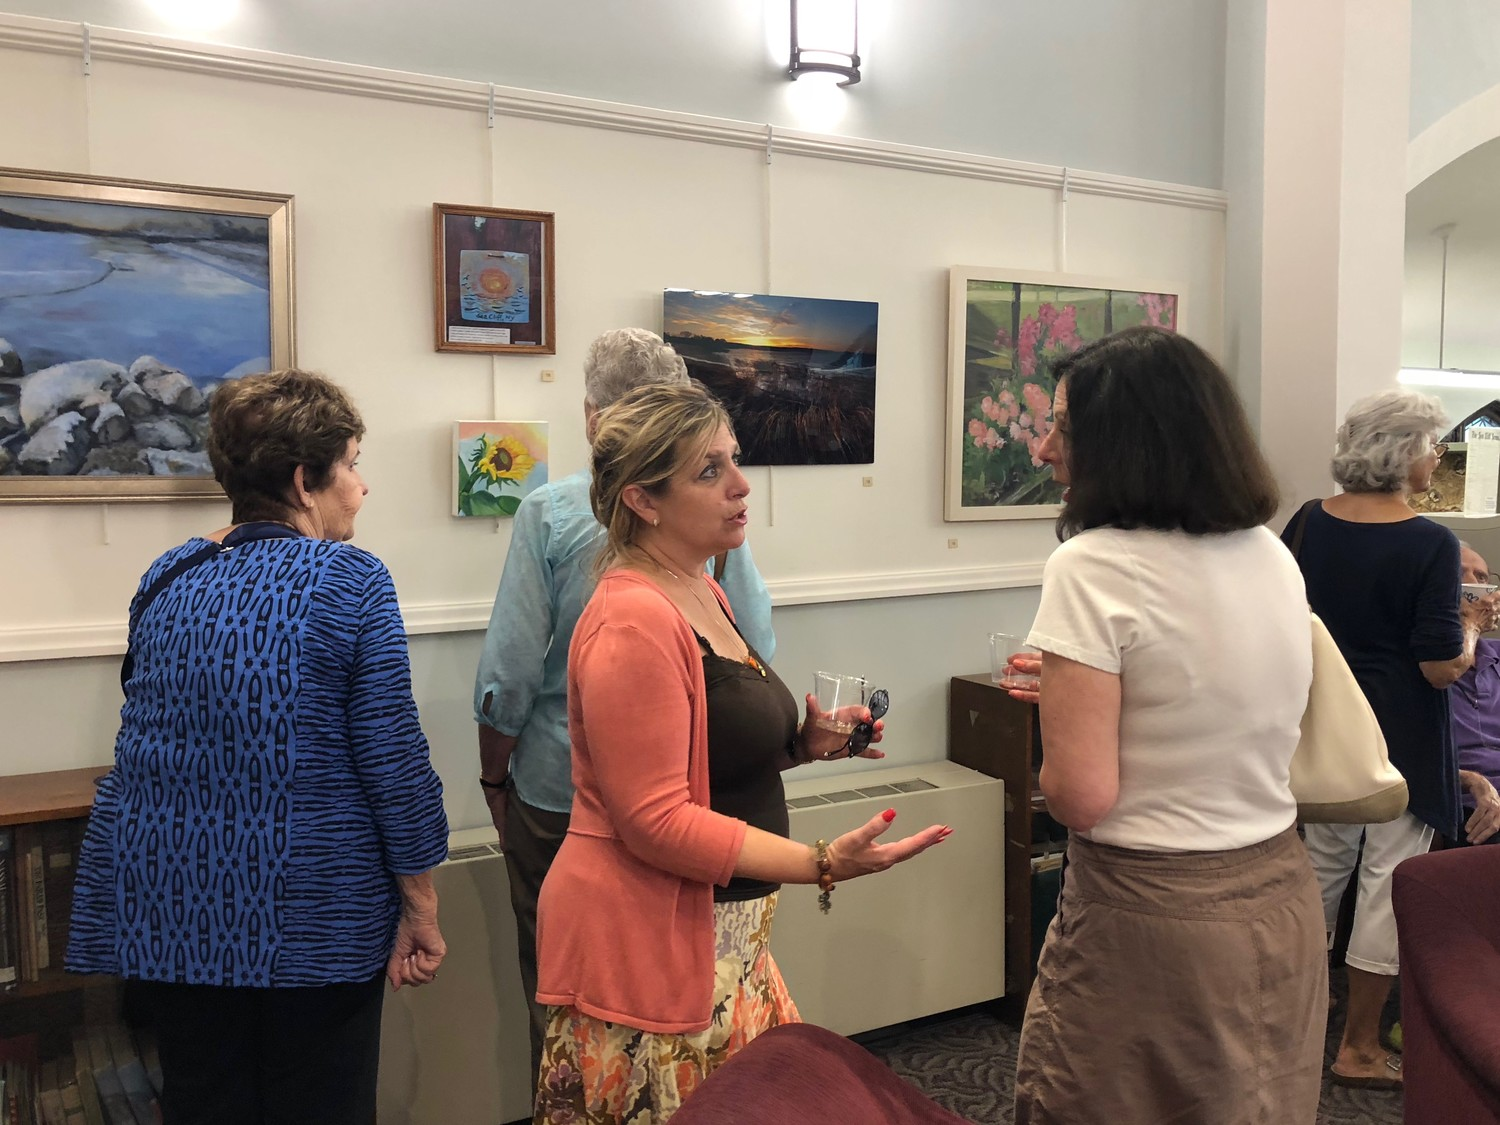 Residents attended an opening reception for the show on Aug. 8 in the newly renovated Sea Cliff Village Library.